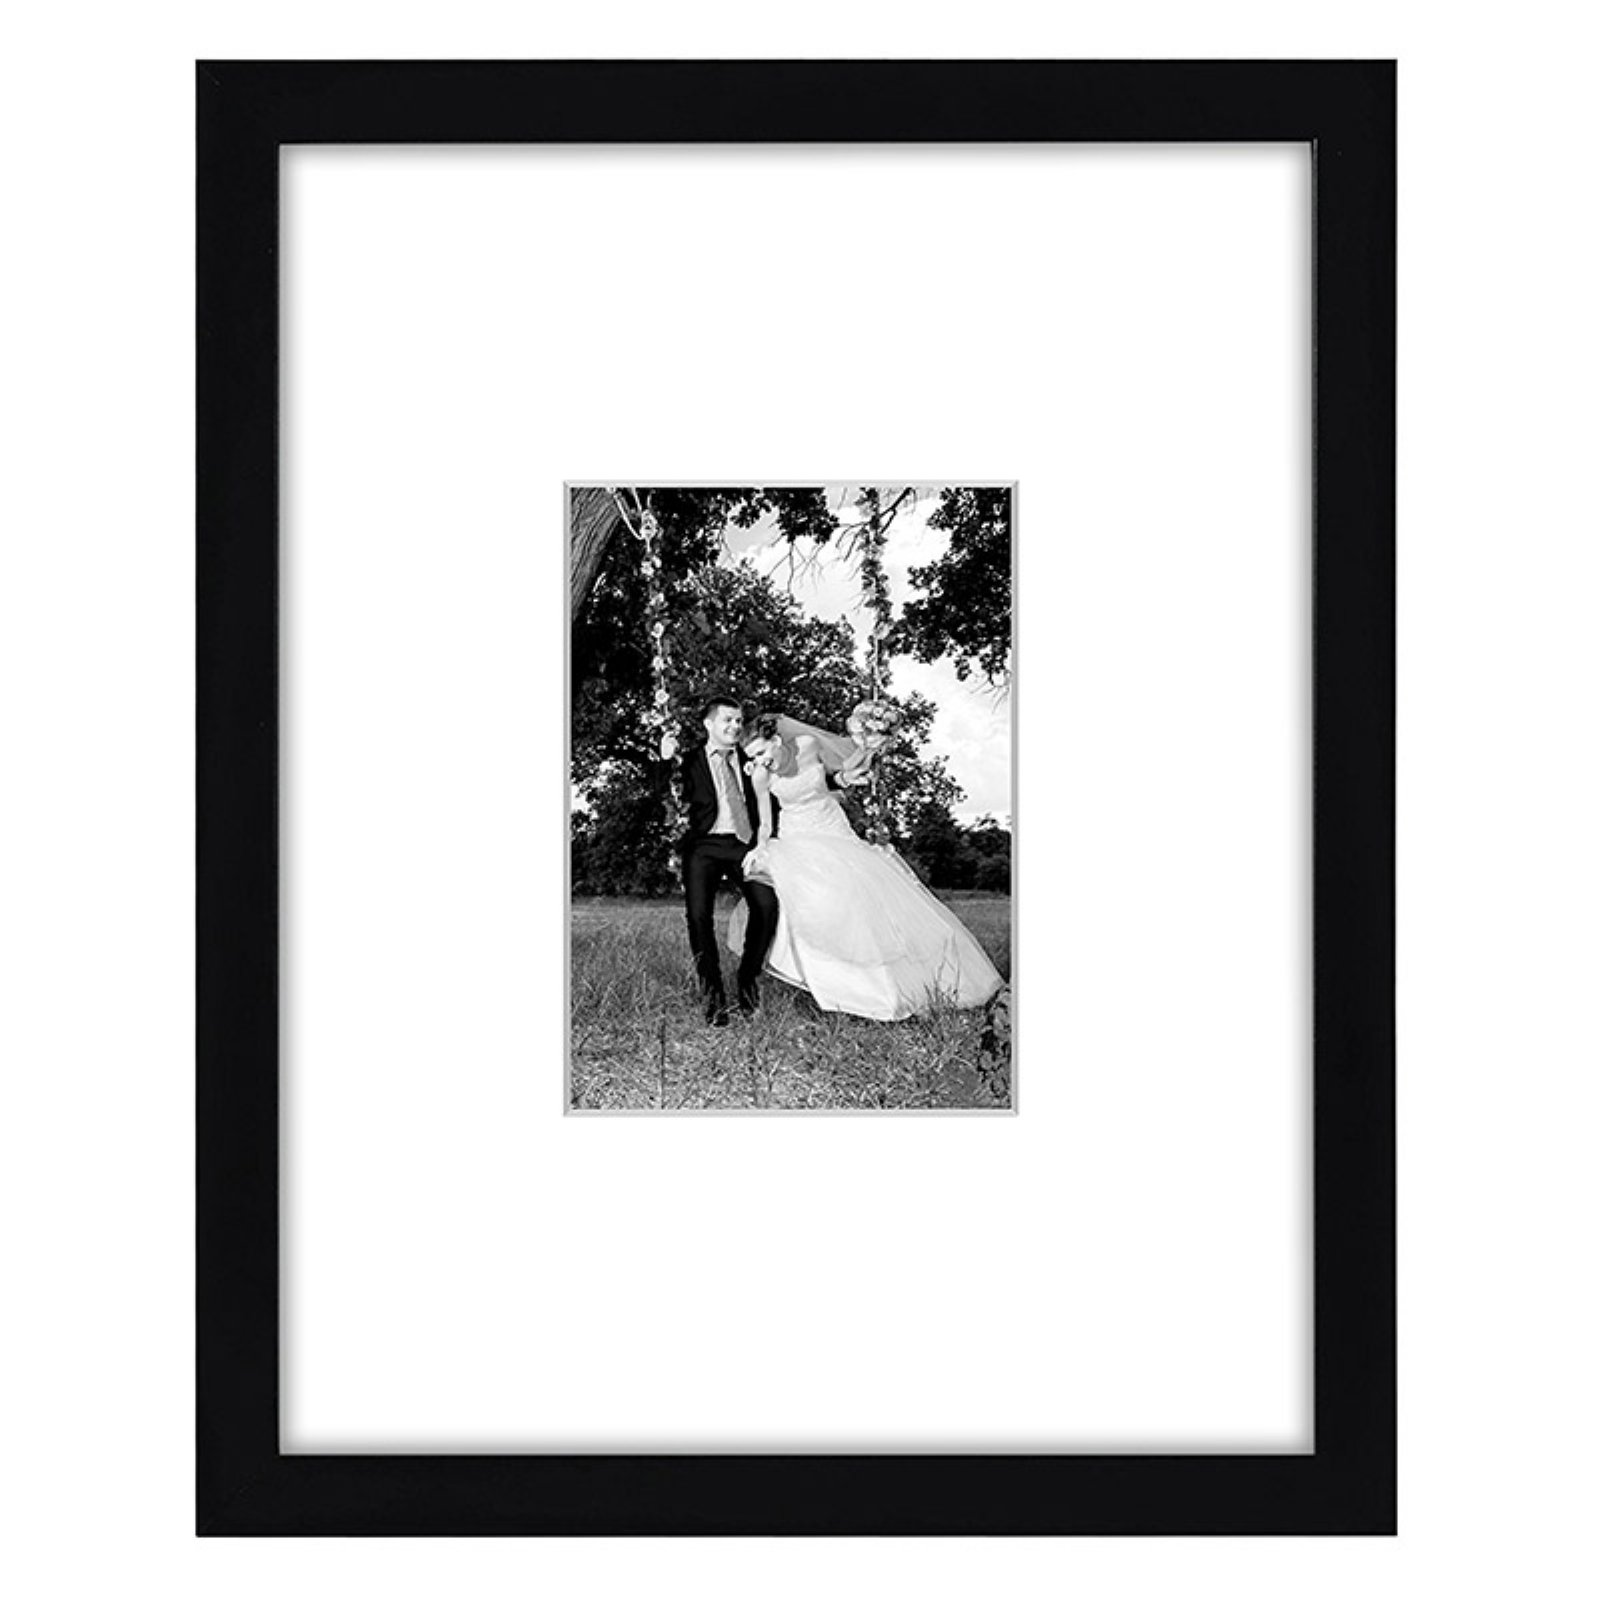 Americanflat 11x14 Black Wall Picture Frame Picture Frame Display Black Picture Frames Picture Frames